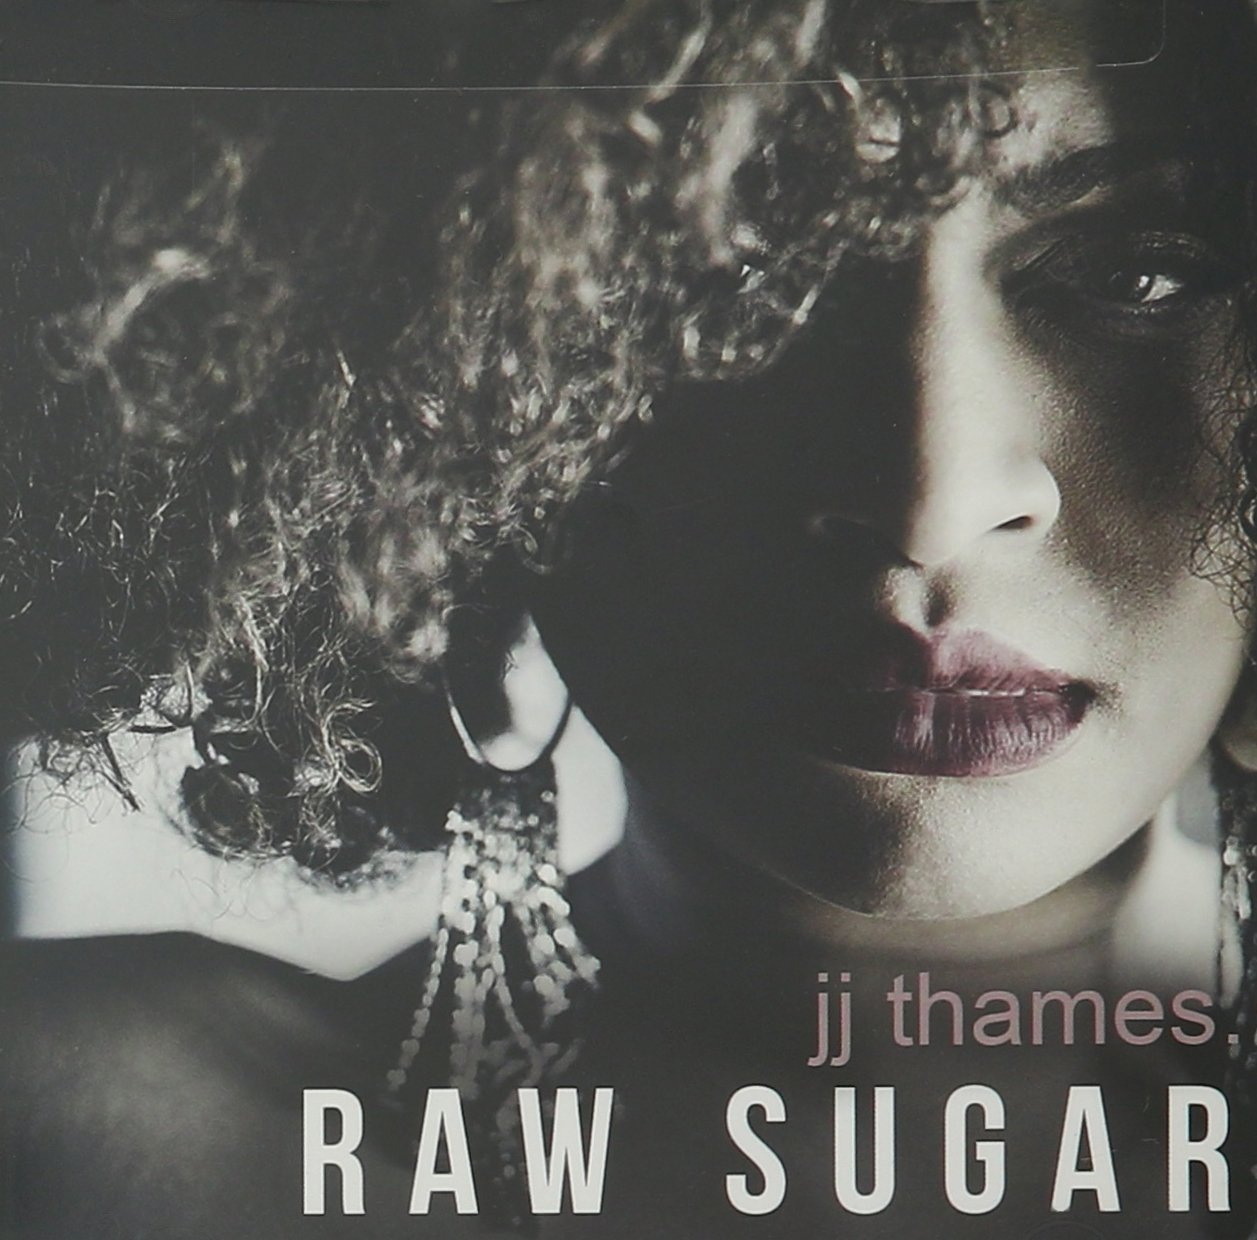 image of album cover for Jj Thames Raw Sugar